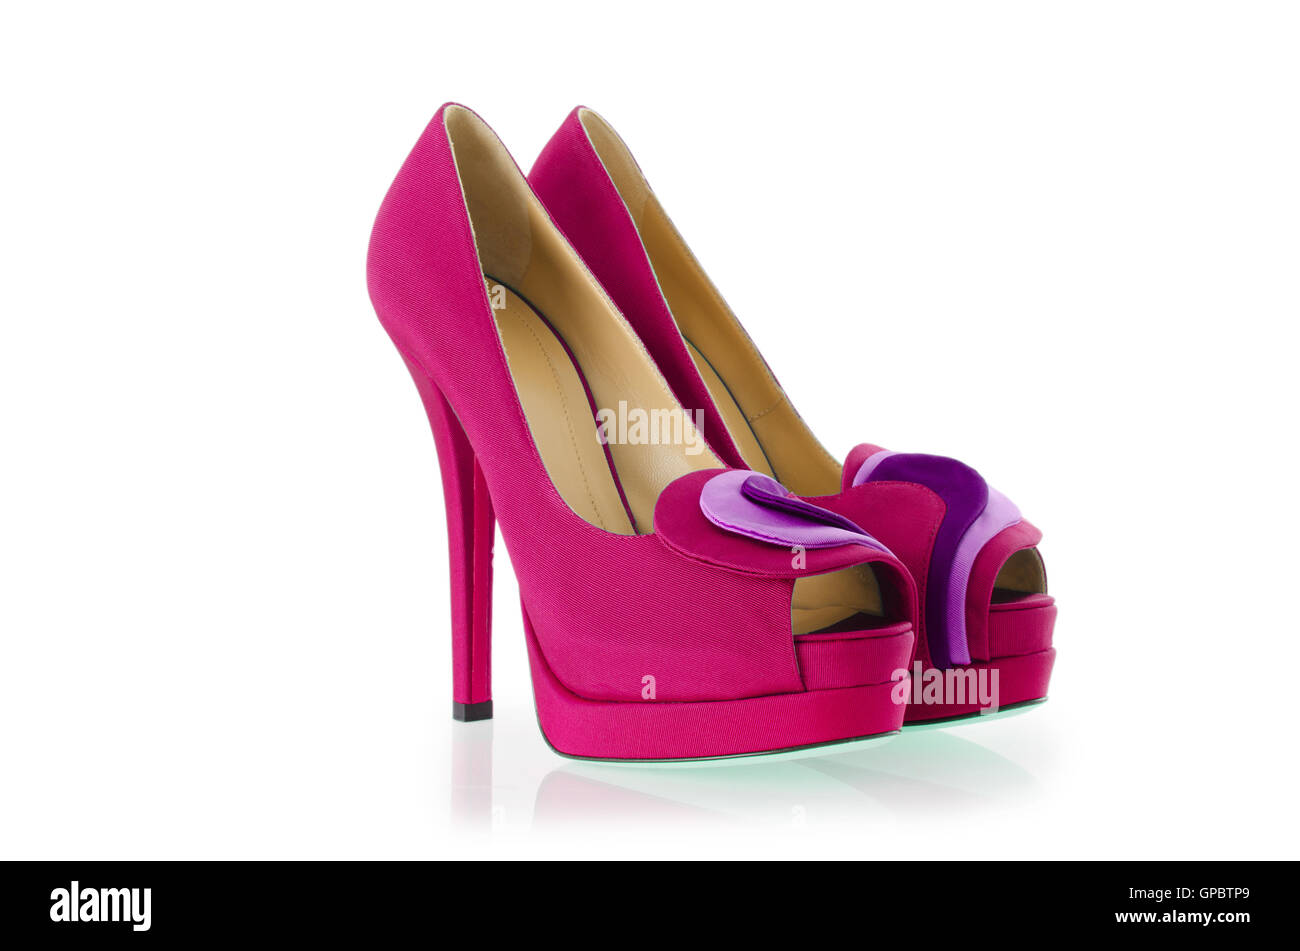 Woman shoes isolated on white - Stock Image